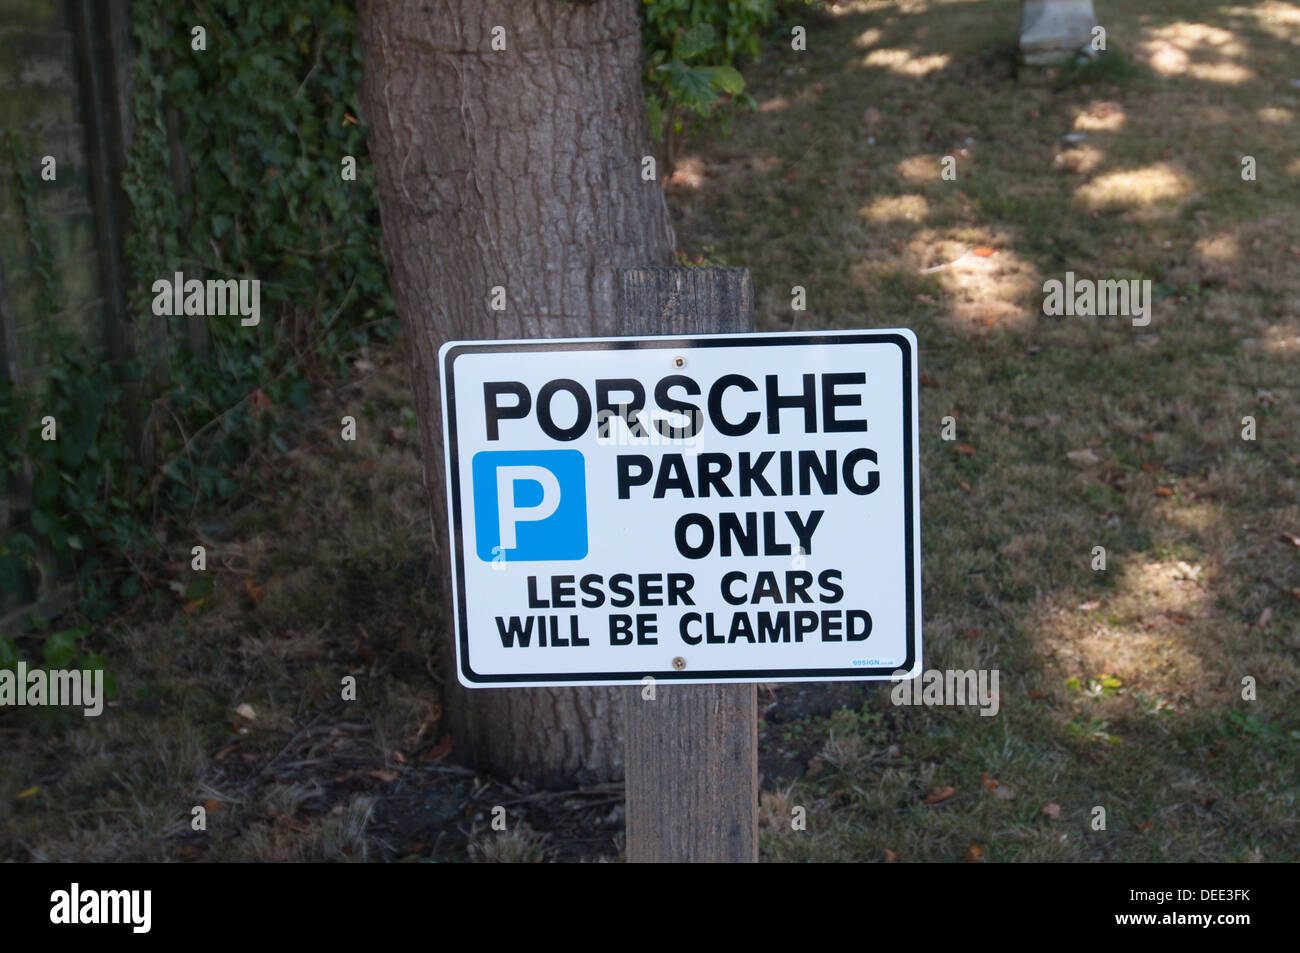 porsche parking only sign - Stock Image